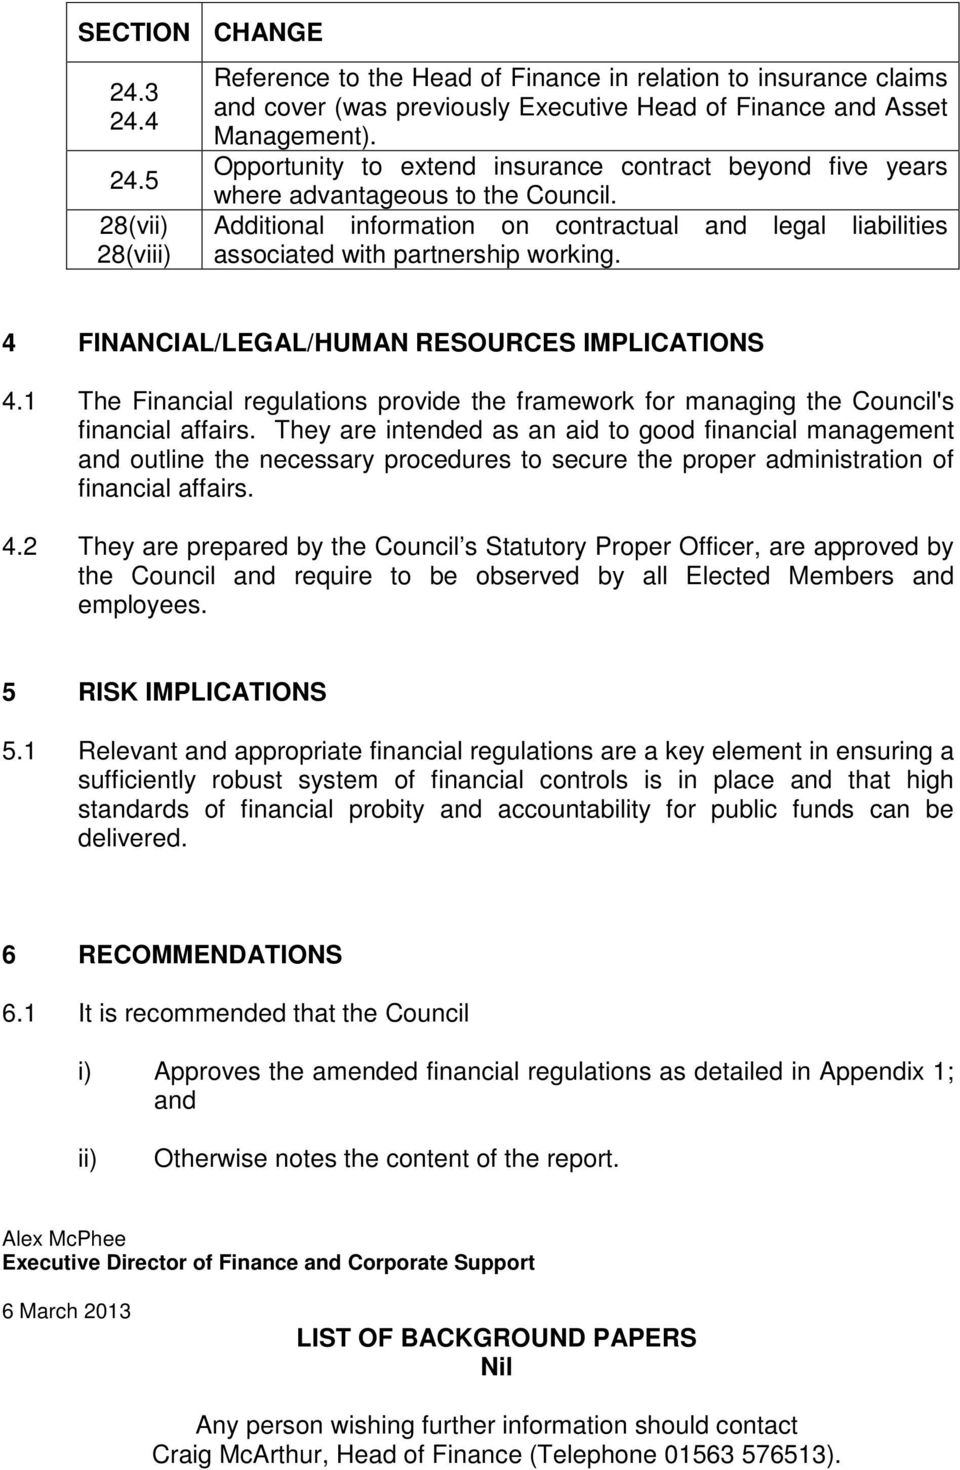 years where advantageous to the Council. Additional information on contractual and legal liabilities associated with partnership working. 4 FINANCIAL/LEGAL/HUMAN RESOURCES IMPLICATIONS 4.